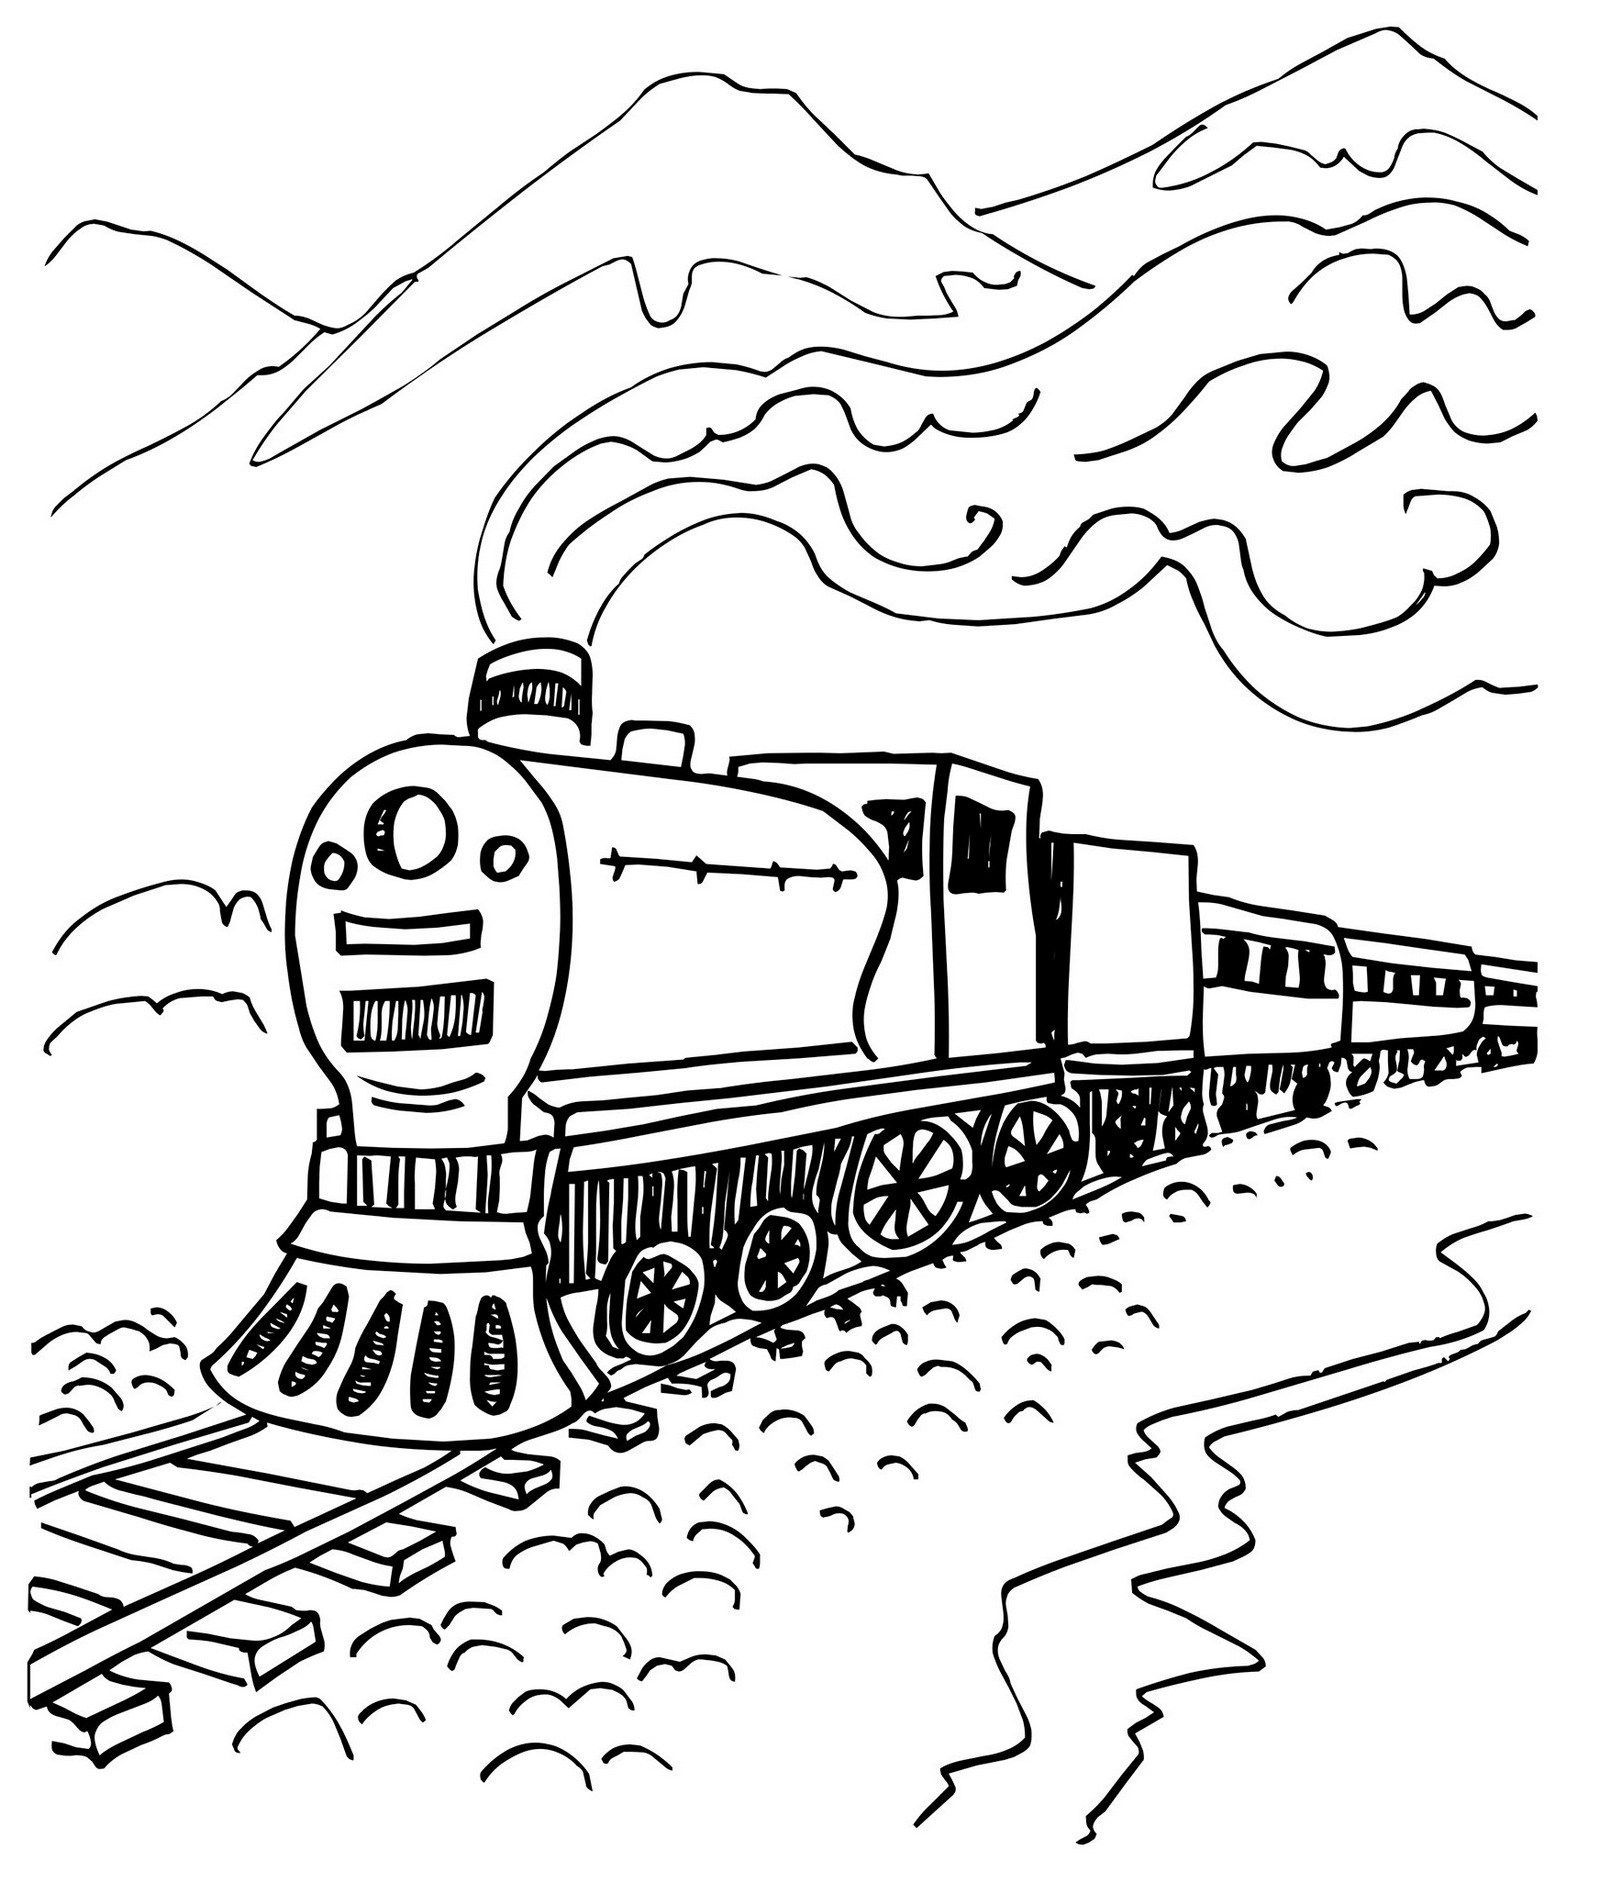 Caboose Coloring Page Coloring Pages Steam Train Coloring Page